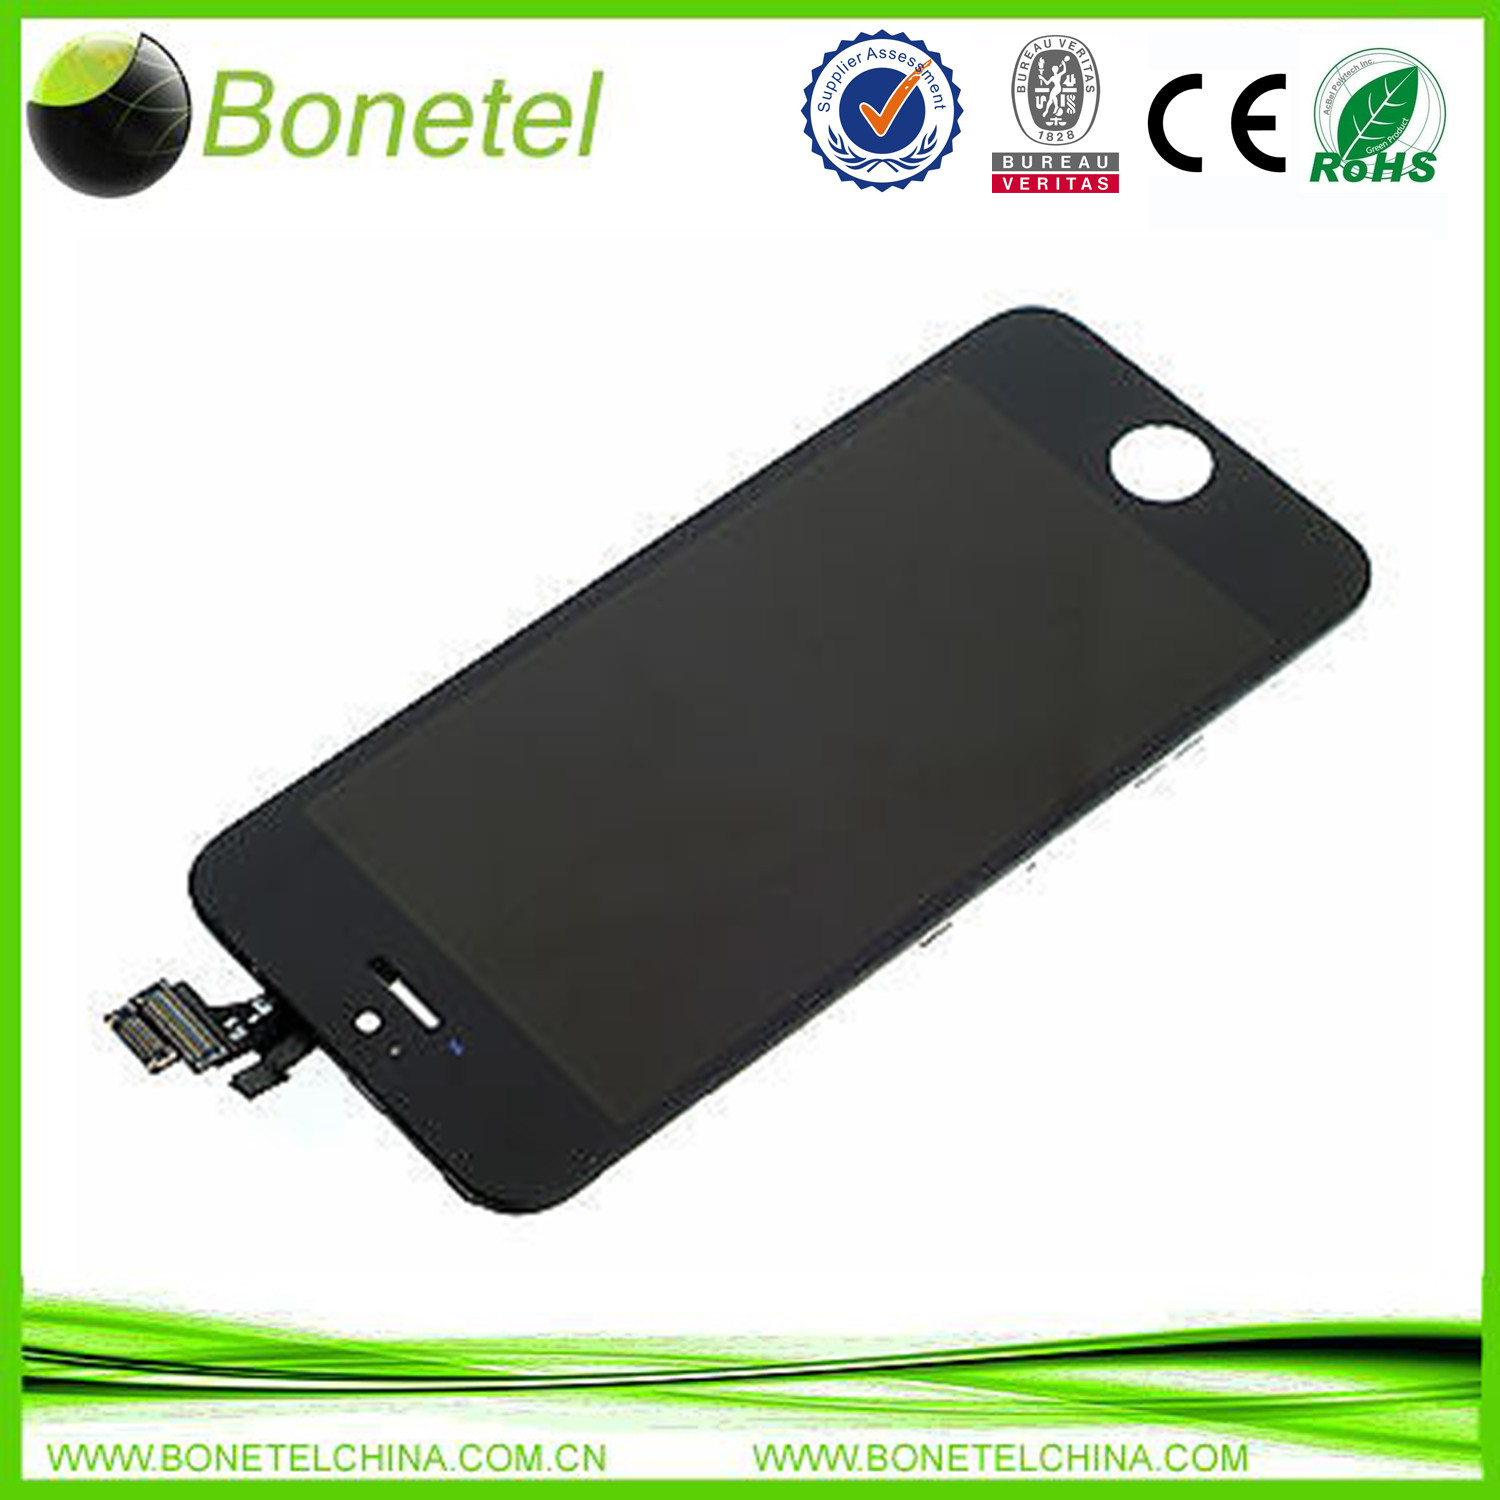 LCD Touchscreen Display Assembly Digitizer for iPhone 5C Black